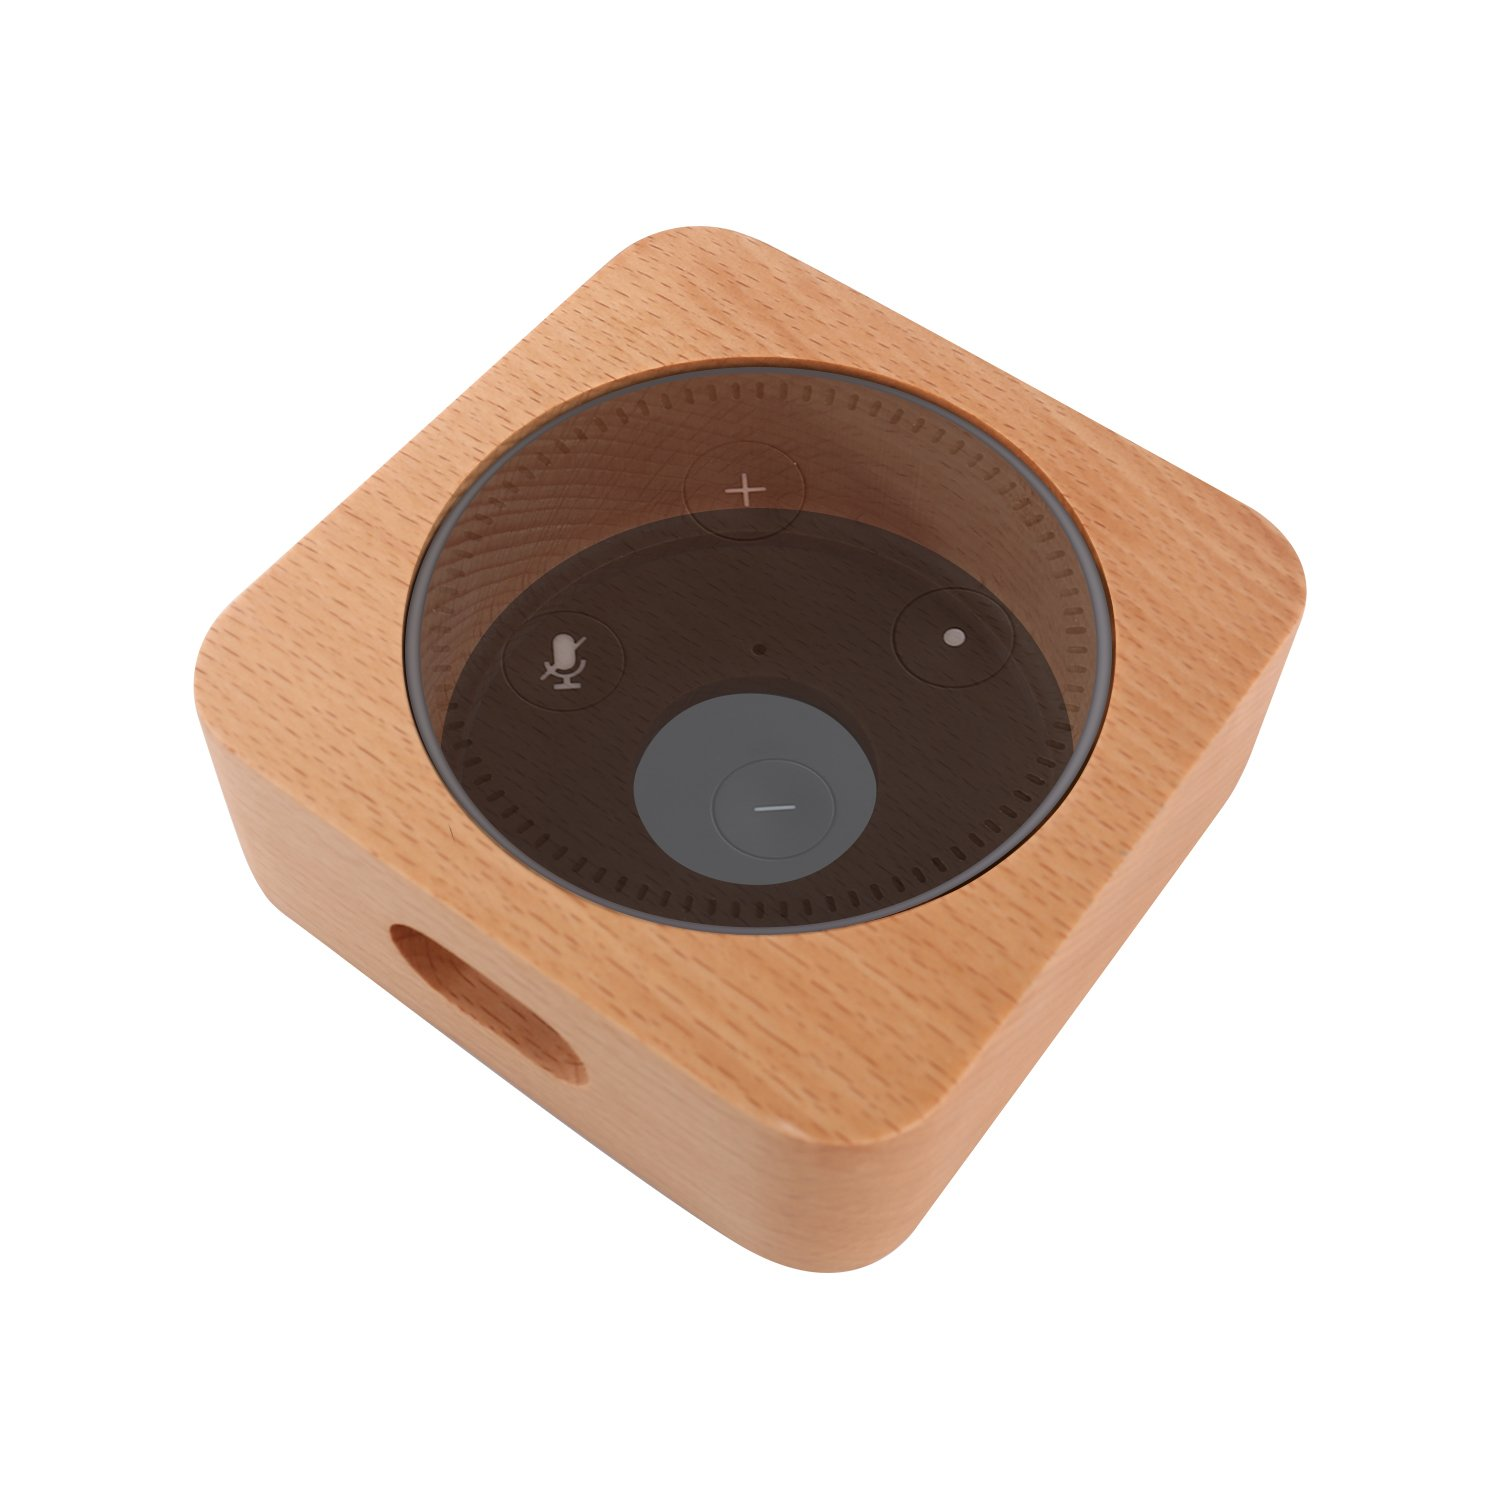 CamRom Natural Solid Wood Stand For Amazon Echo Dot【2nd Generation】, Solid Wood Speaker Holder Docking Station for Alexa, Protective Case Made from Beech Wood, Saving Space on Nightstand or Tables by CamRom (Image #1)